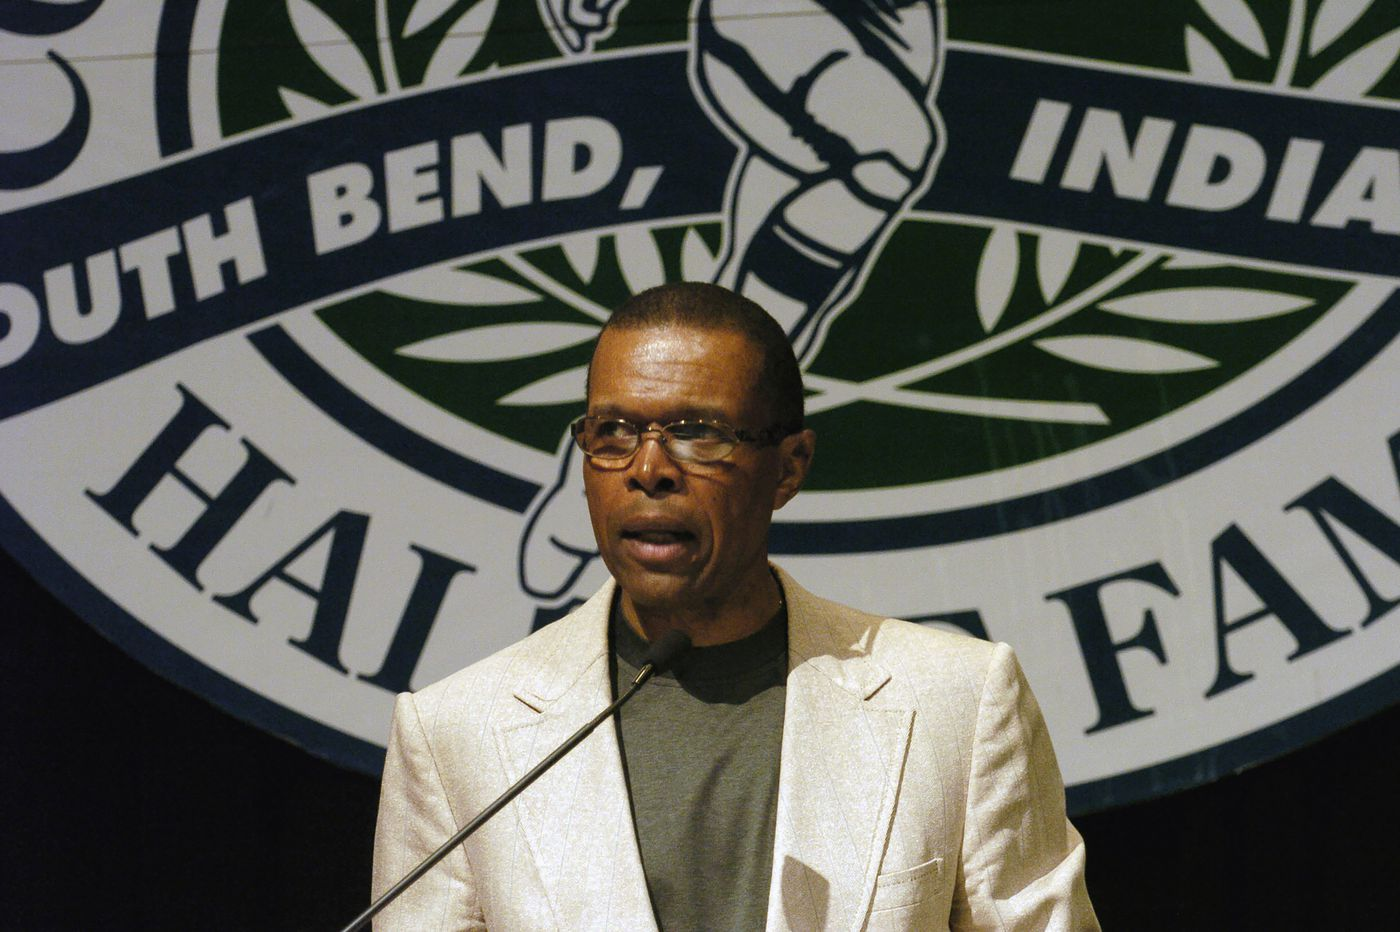 Gale Sayers, Hall of Fame running back for the Bears, dies at 77